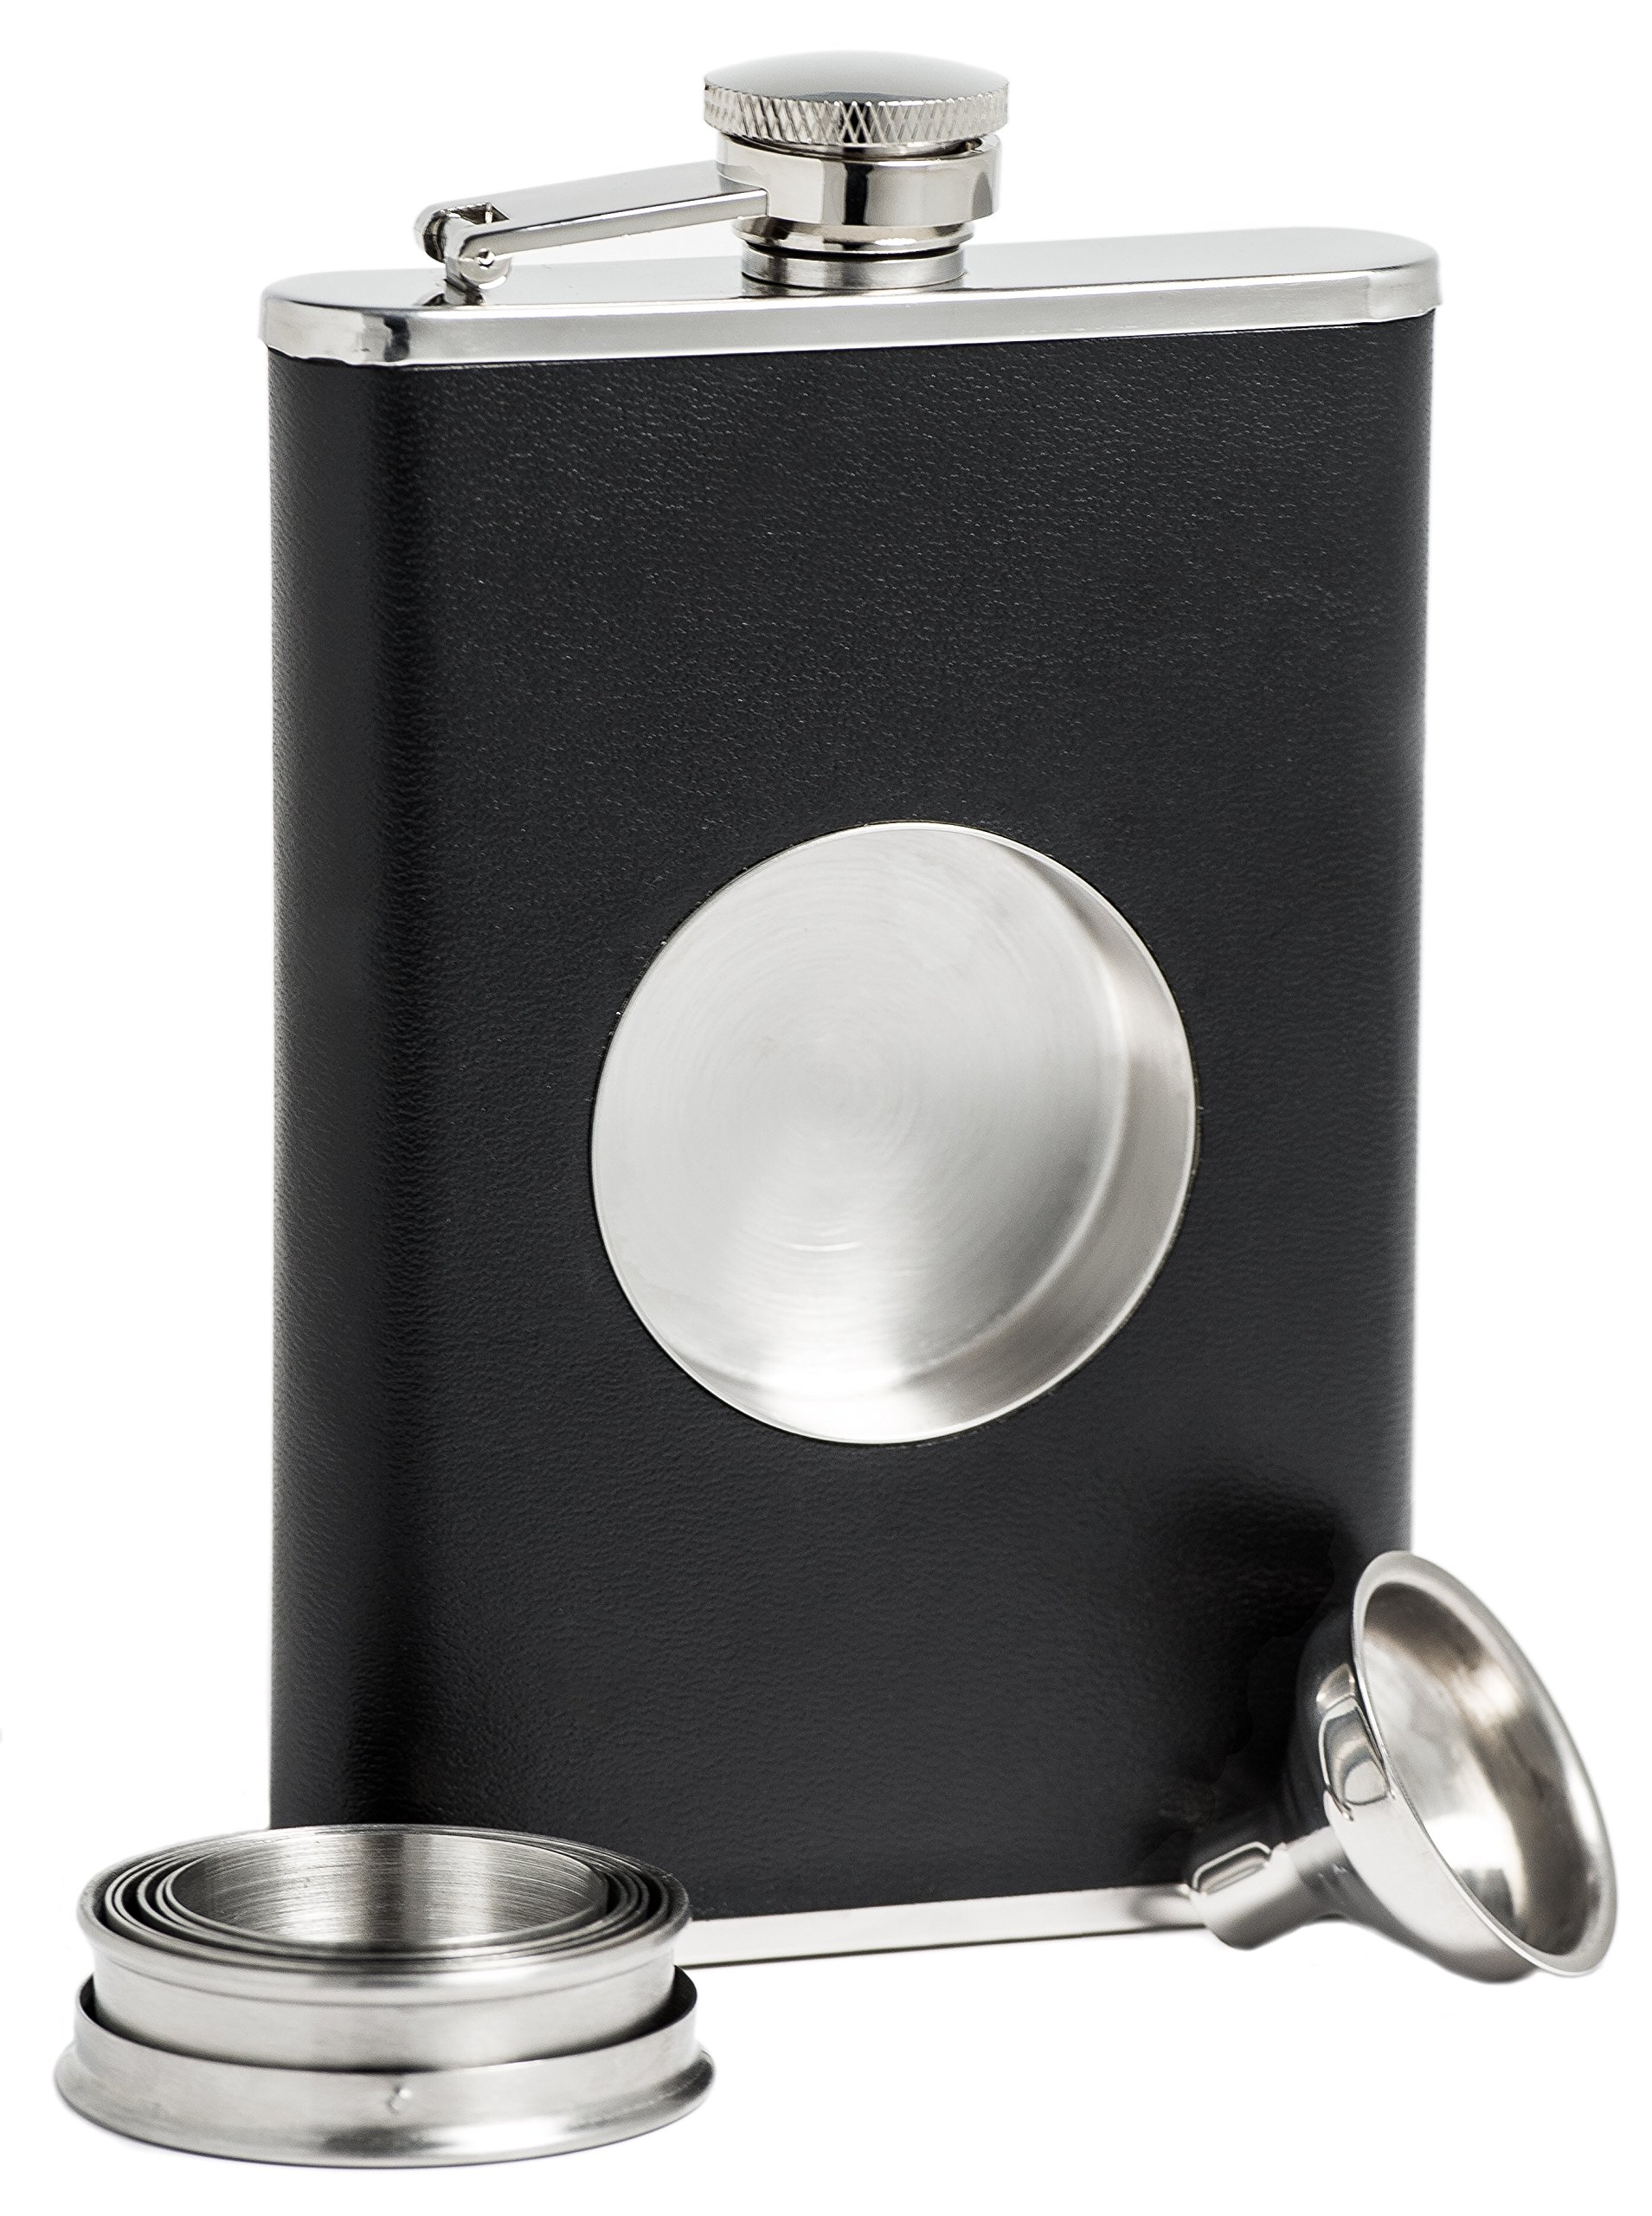 Shot Flask - Stainless Steel 8 oz Hip Flask, Built-in Collapsible 2 Oz. Shot Glass & Flask Funnel - Everything You Need to Pour Shots on the Go - BarMe Brand by BarMe (Image #2)